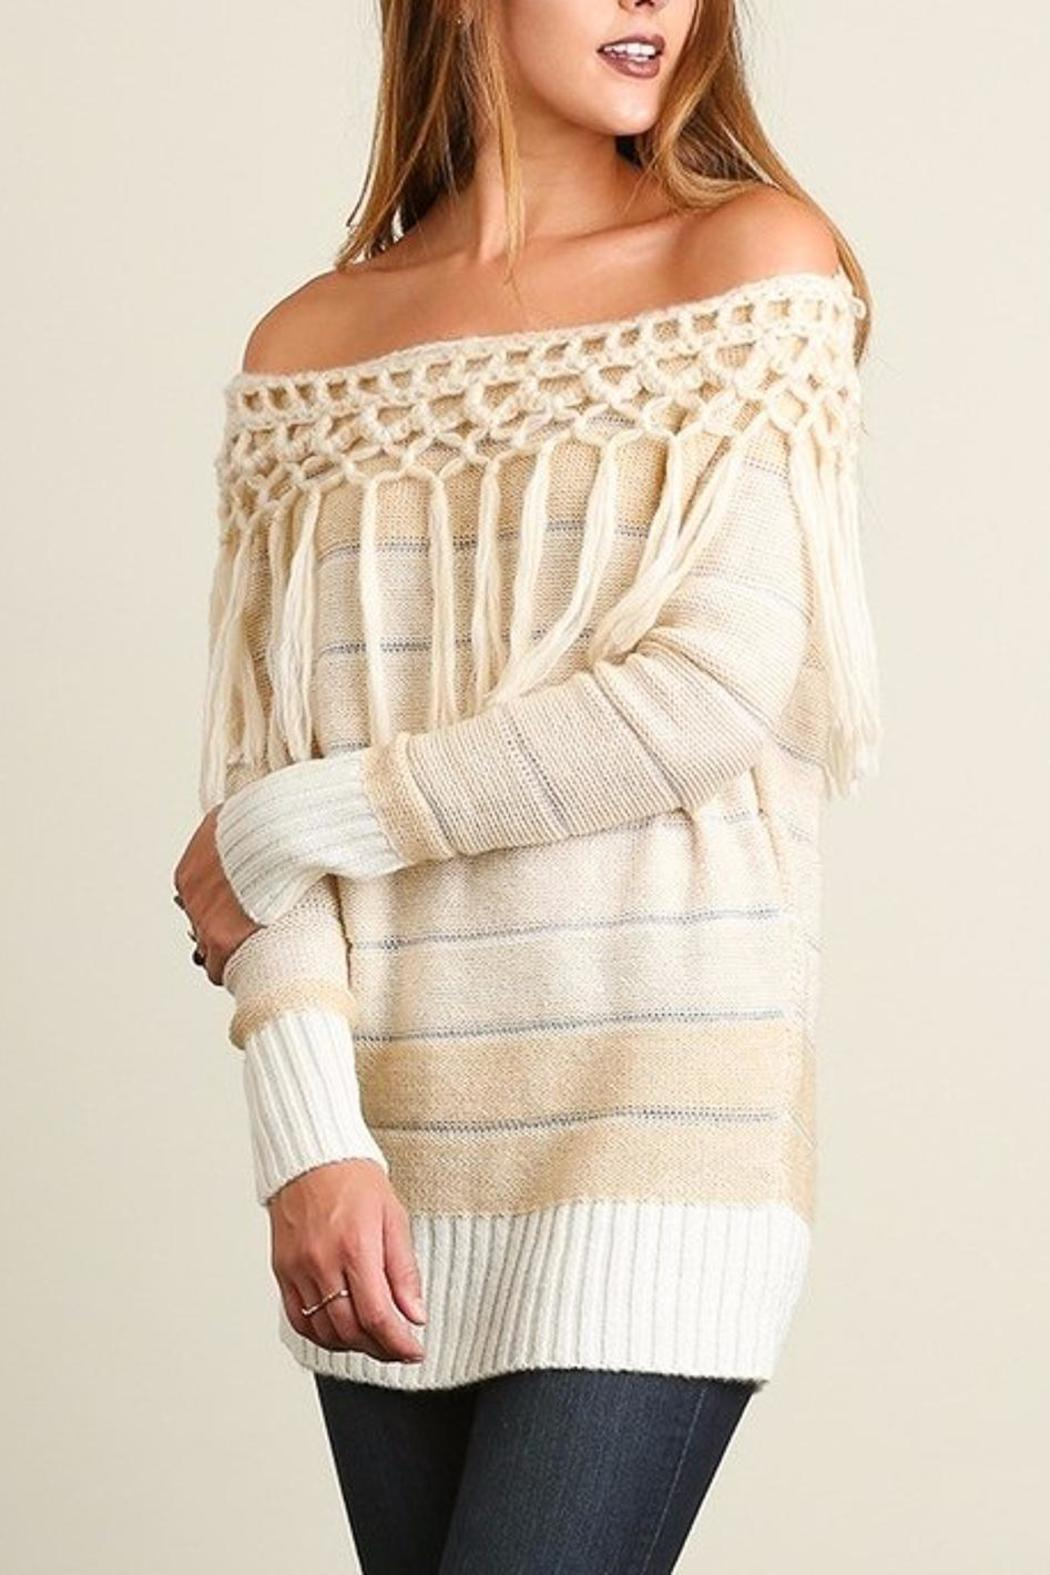 People Outfitter Tassels Tunic Sweater - Main Image